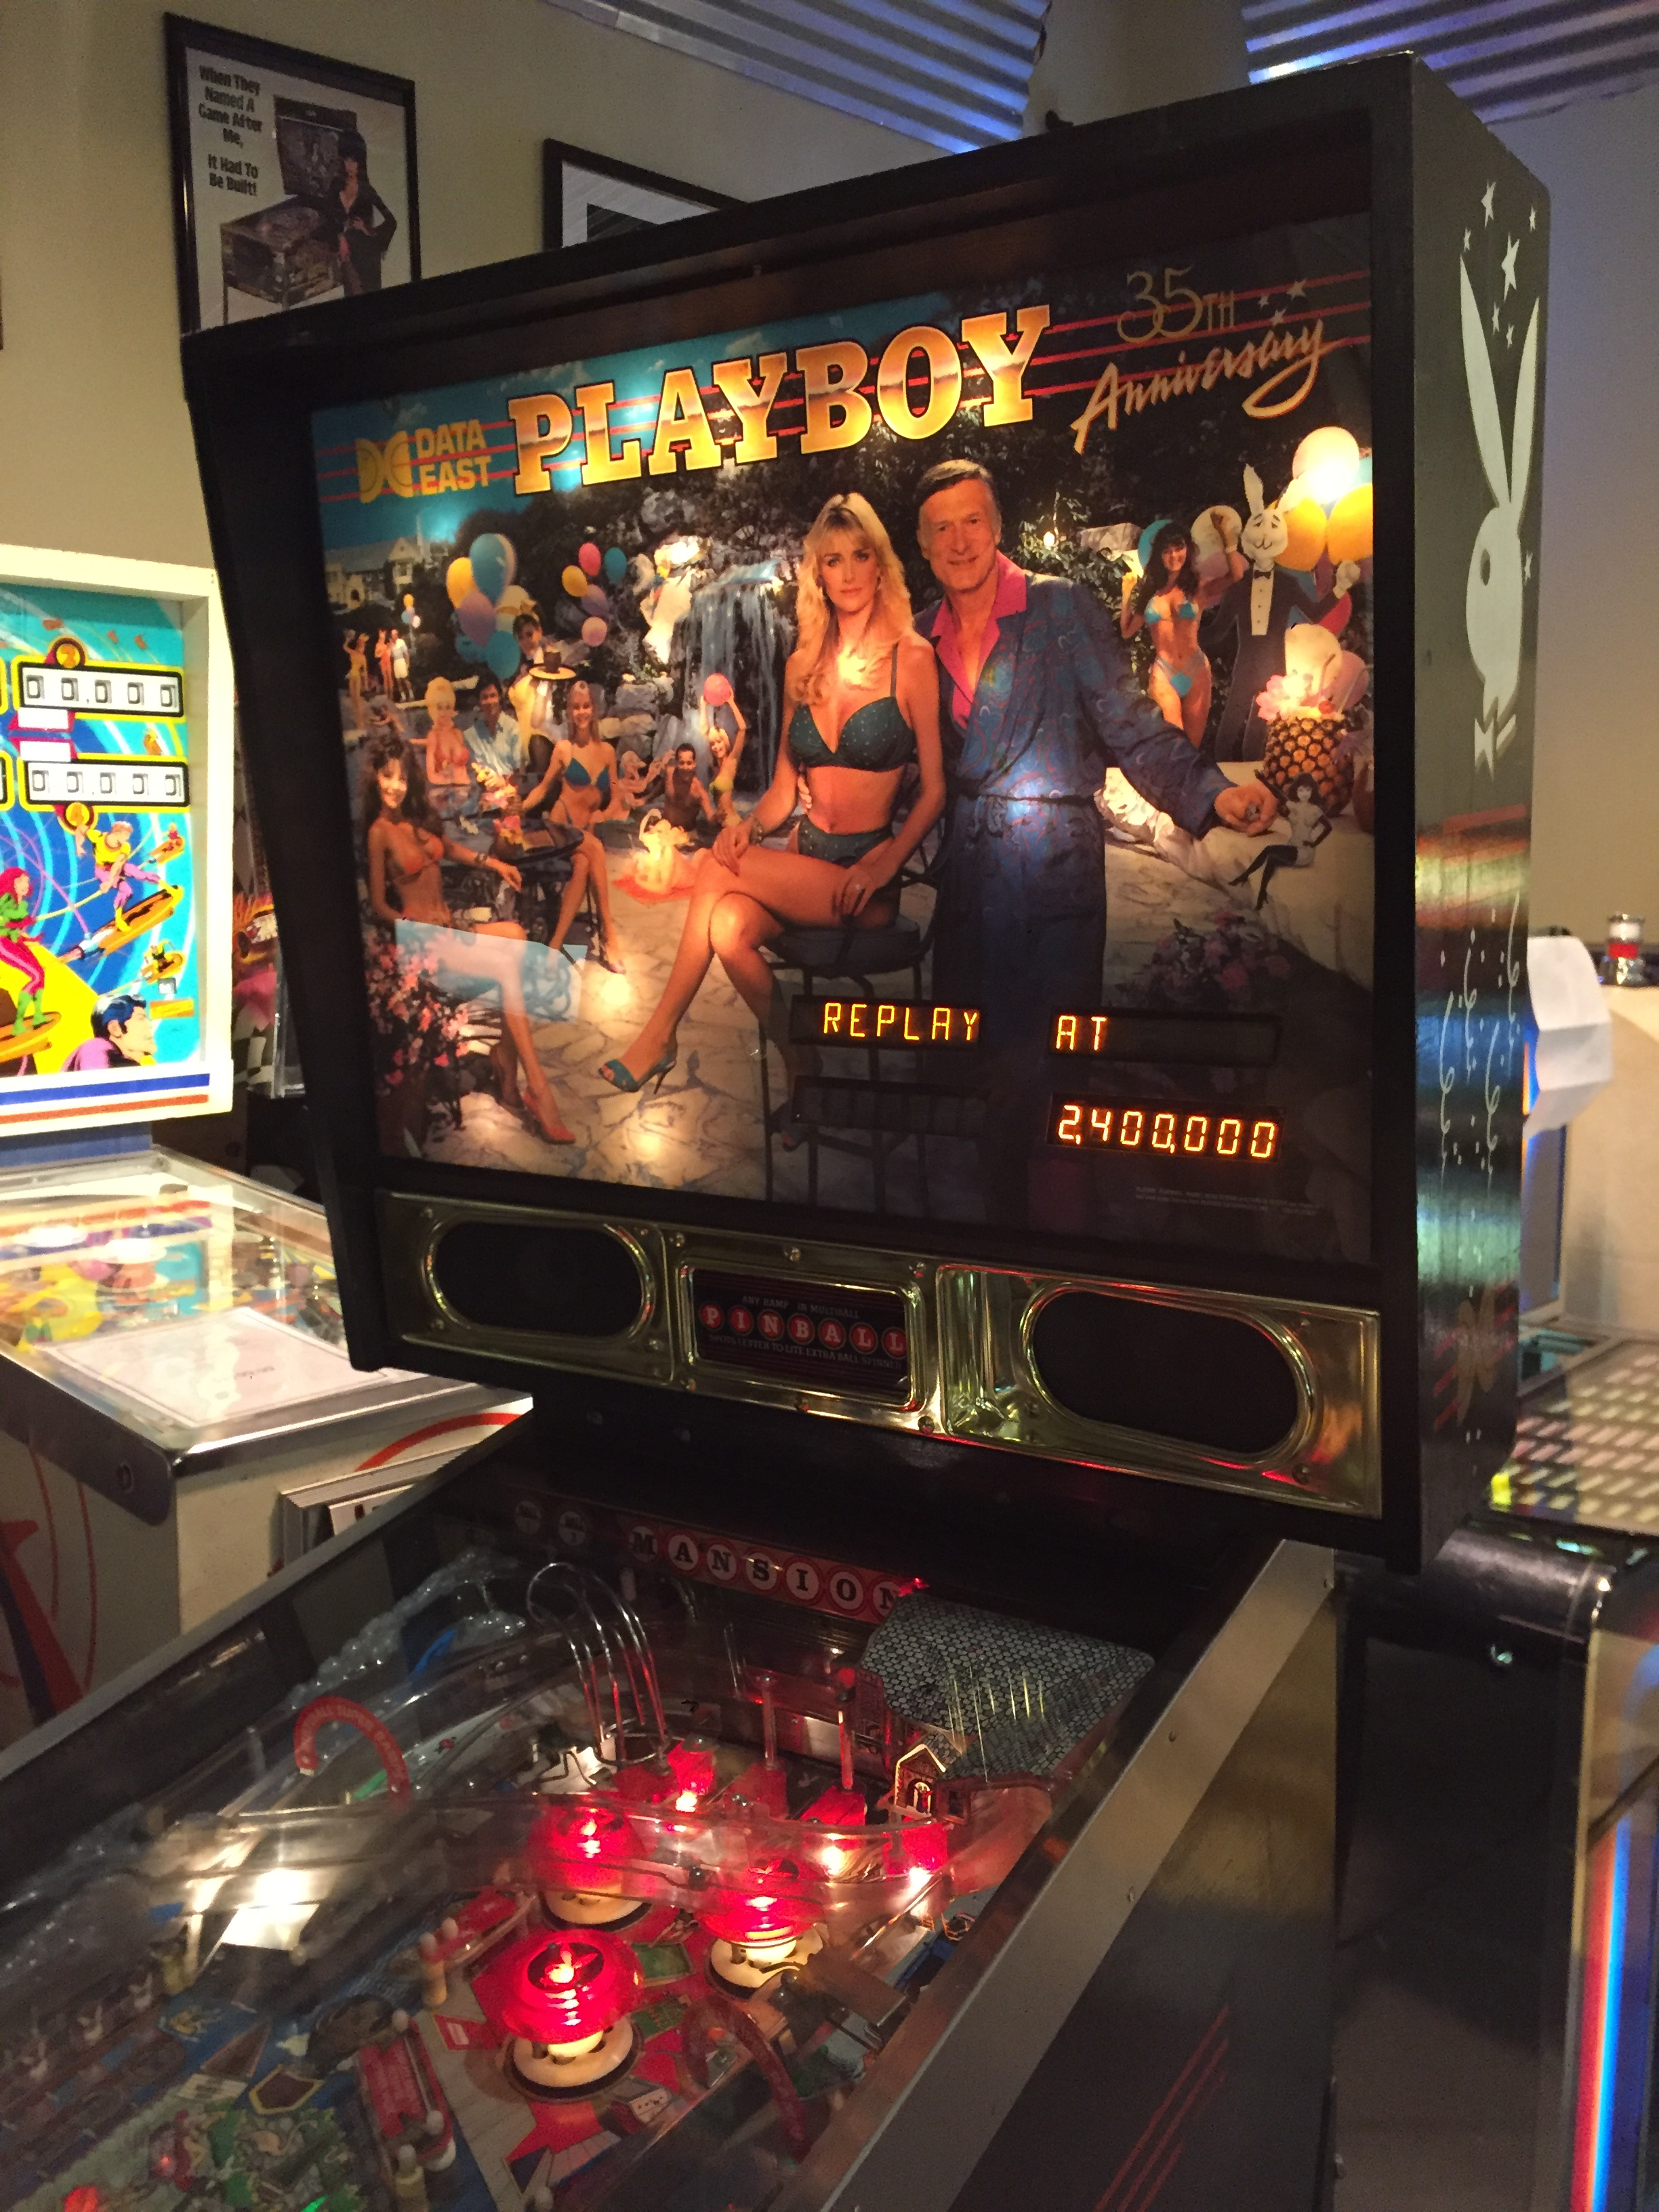 Games People Play 187 Playboy Pinball 35th Anniversary By